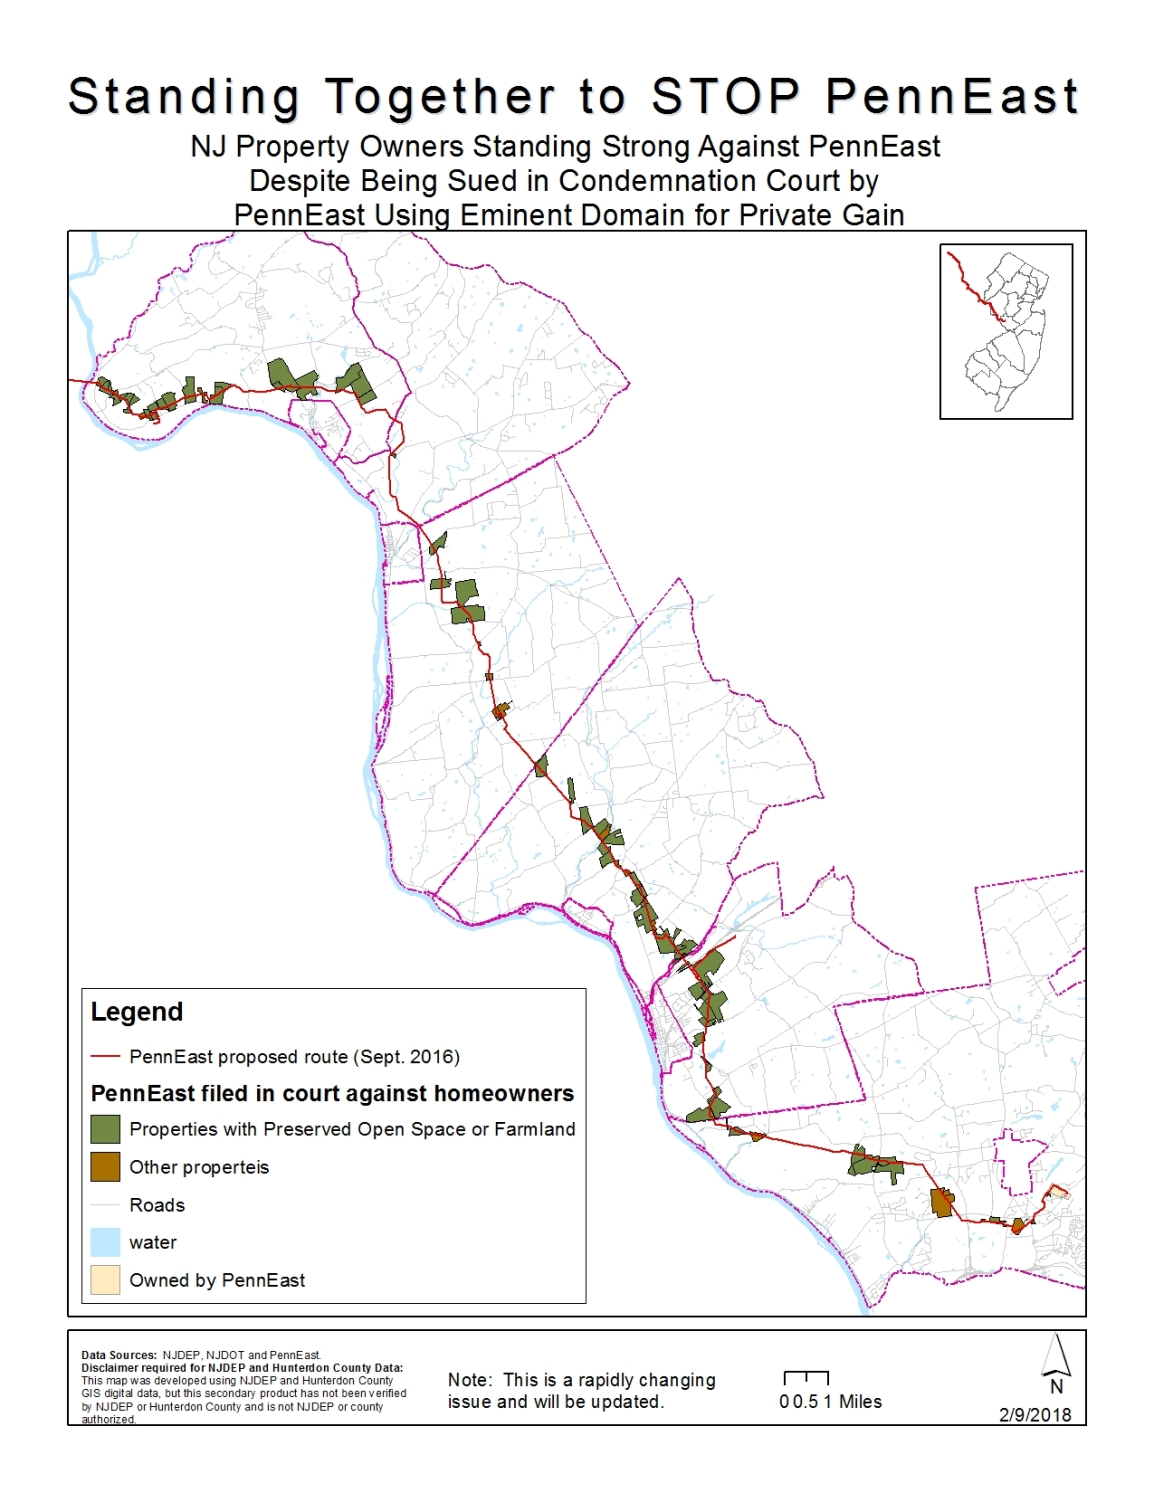 Map_StandingStrongAgainstPennEast_Feb92018